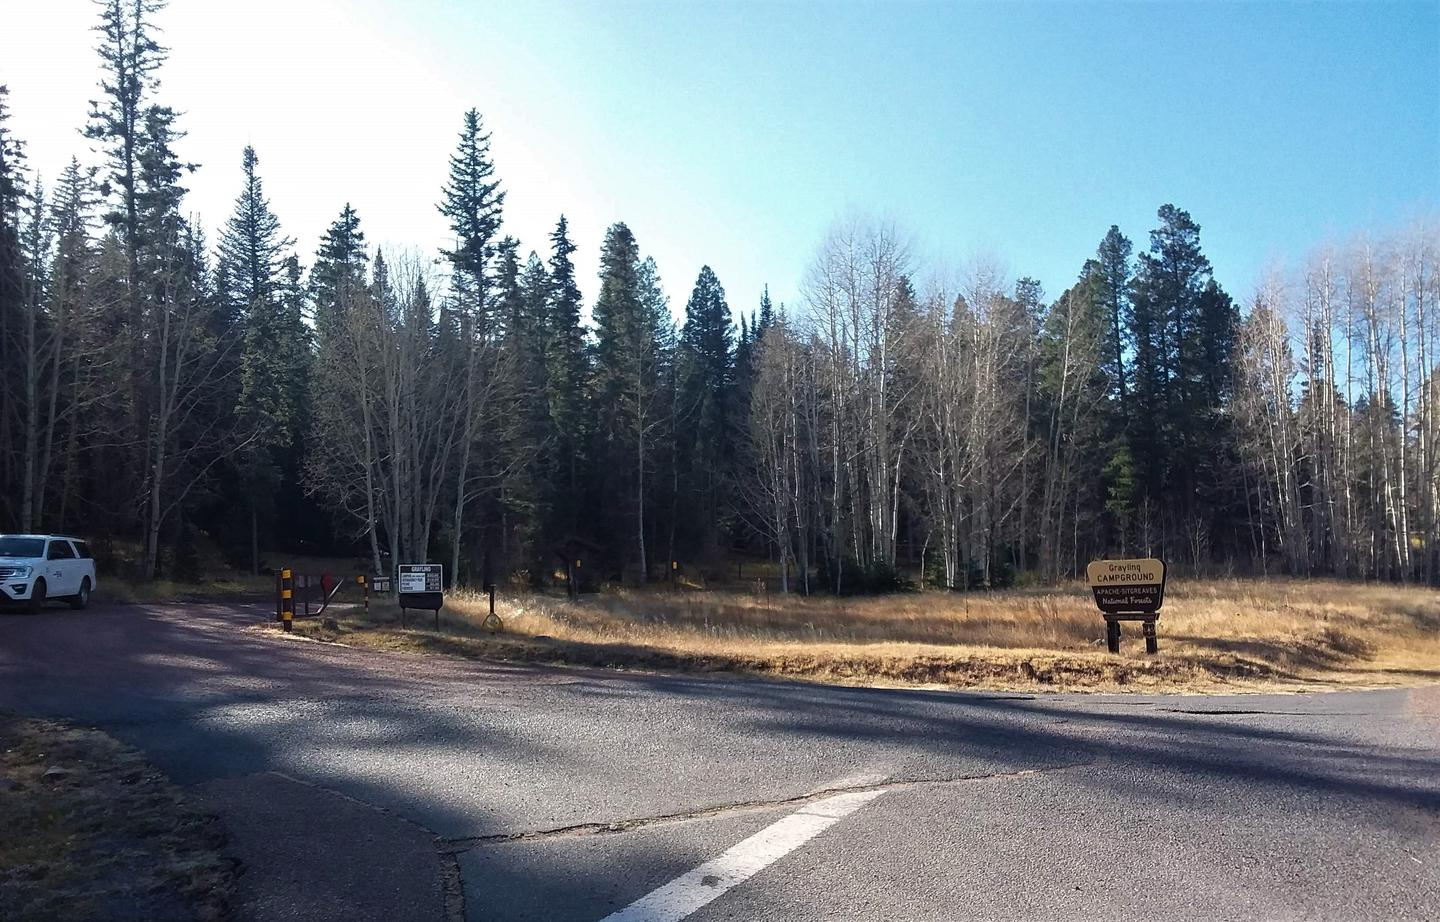 Grayling Campground Entrance and Sign